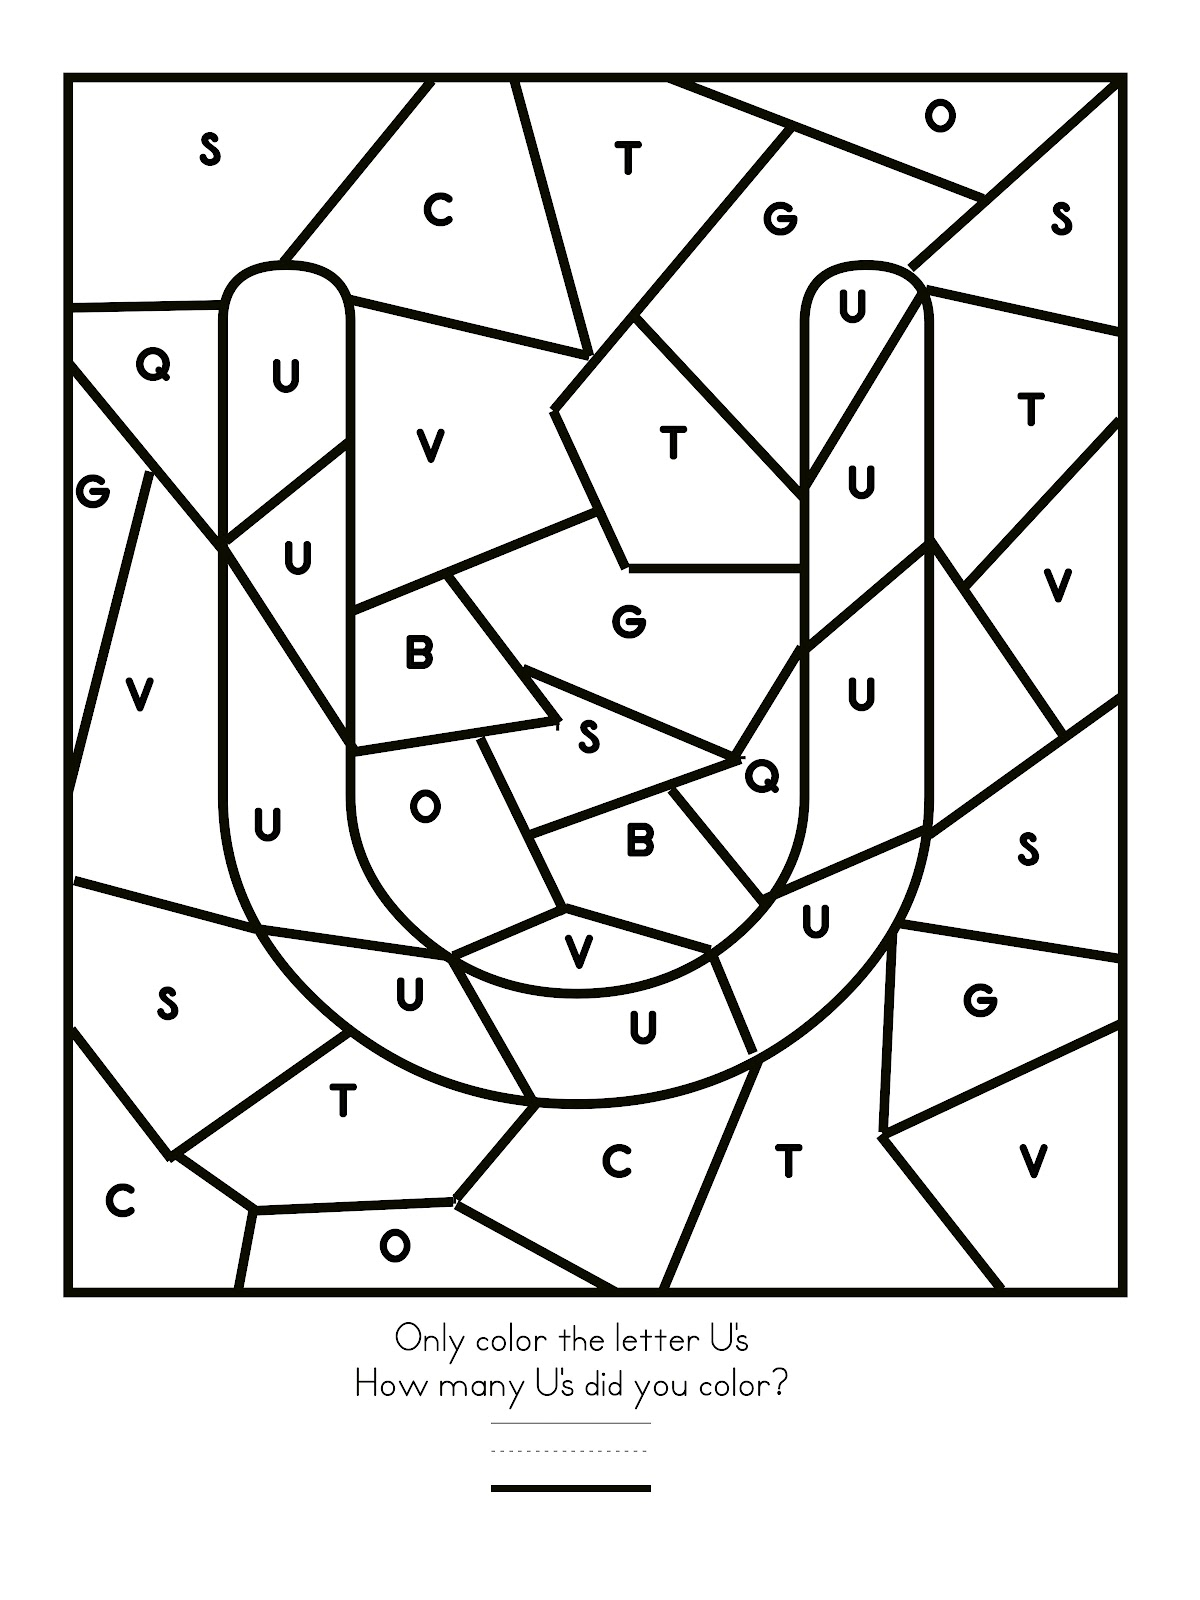 Letter u color worksheet for preschool preschool crafts for Letter u coloring pages